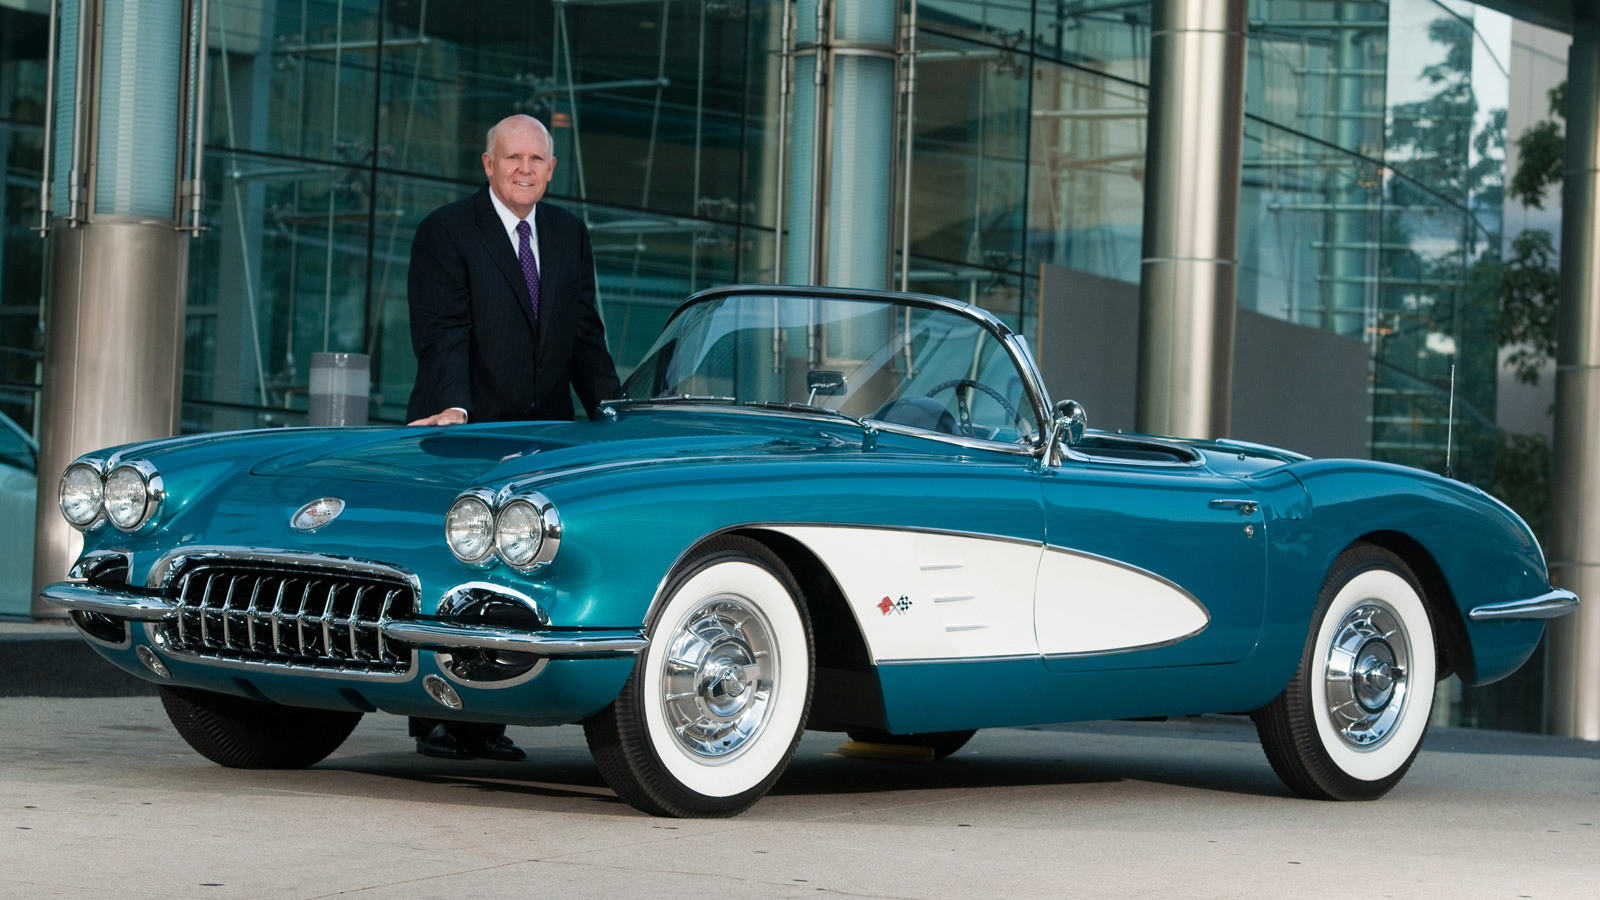 GM CEO Dan Akerson and his 1958 Chevrolet Corvette that will be sold for charity